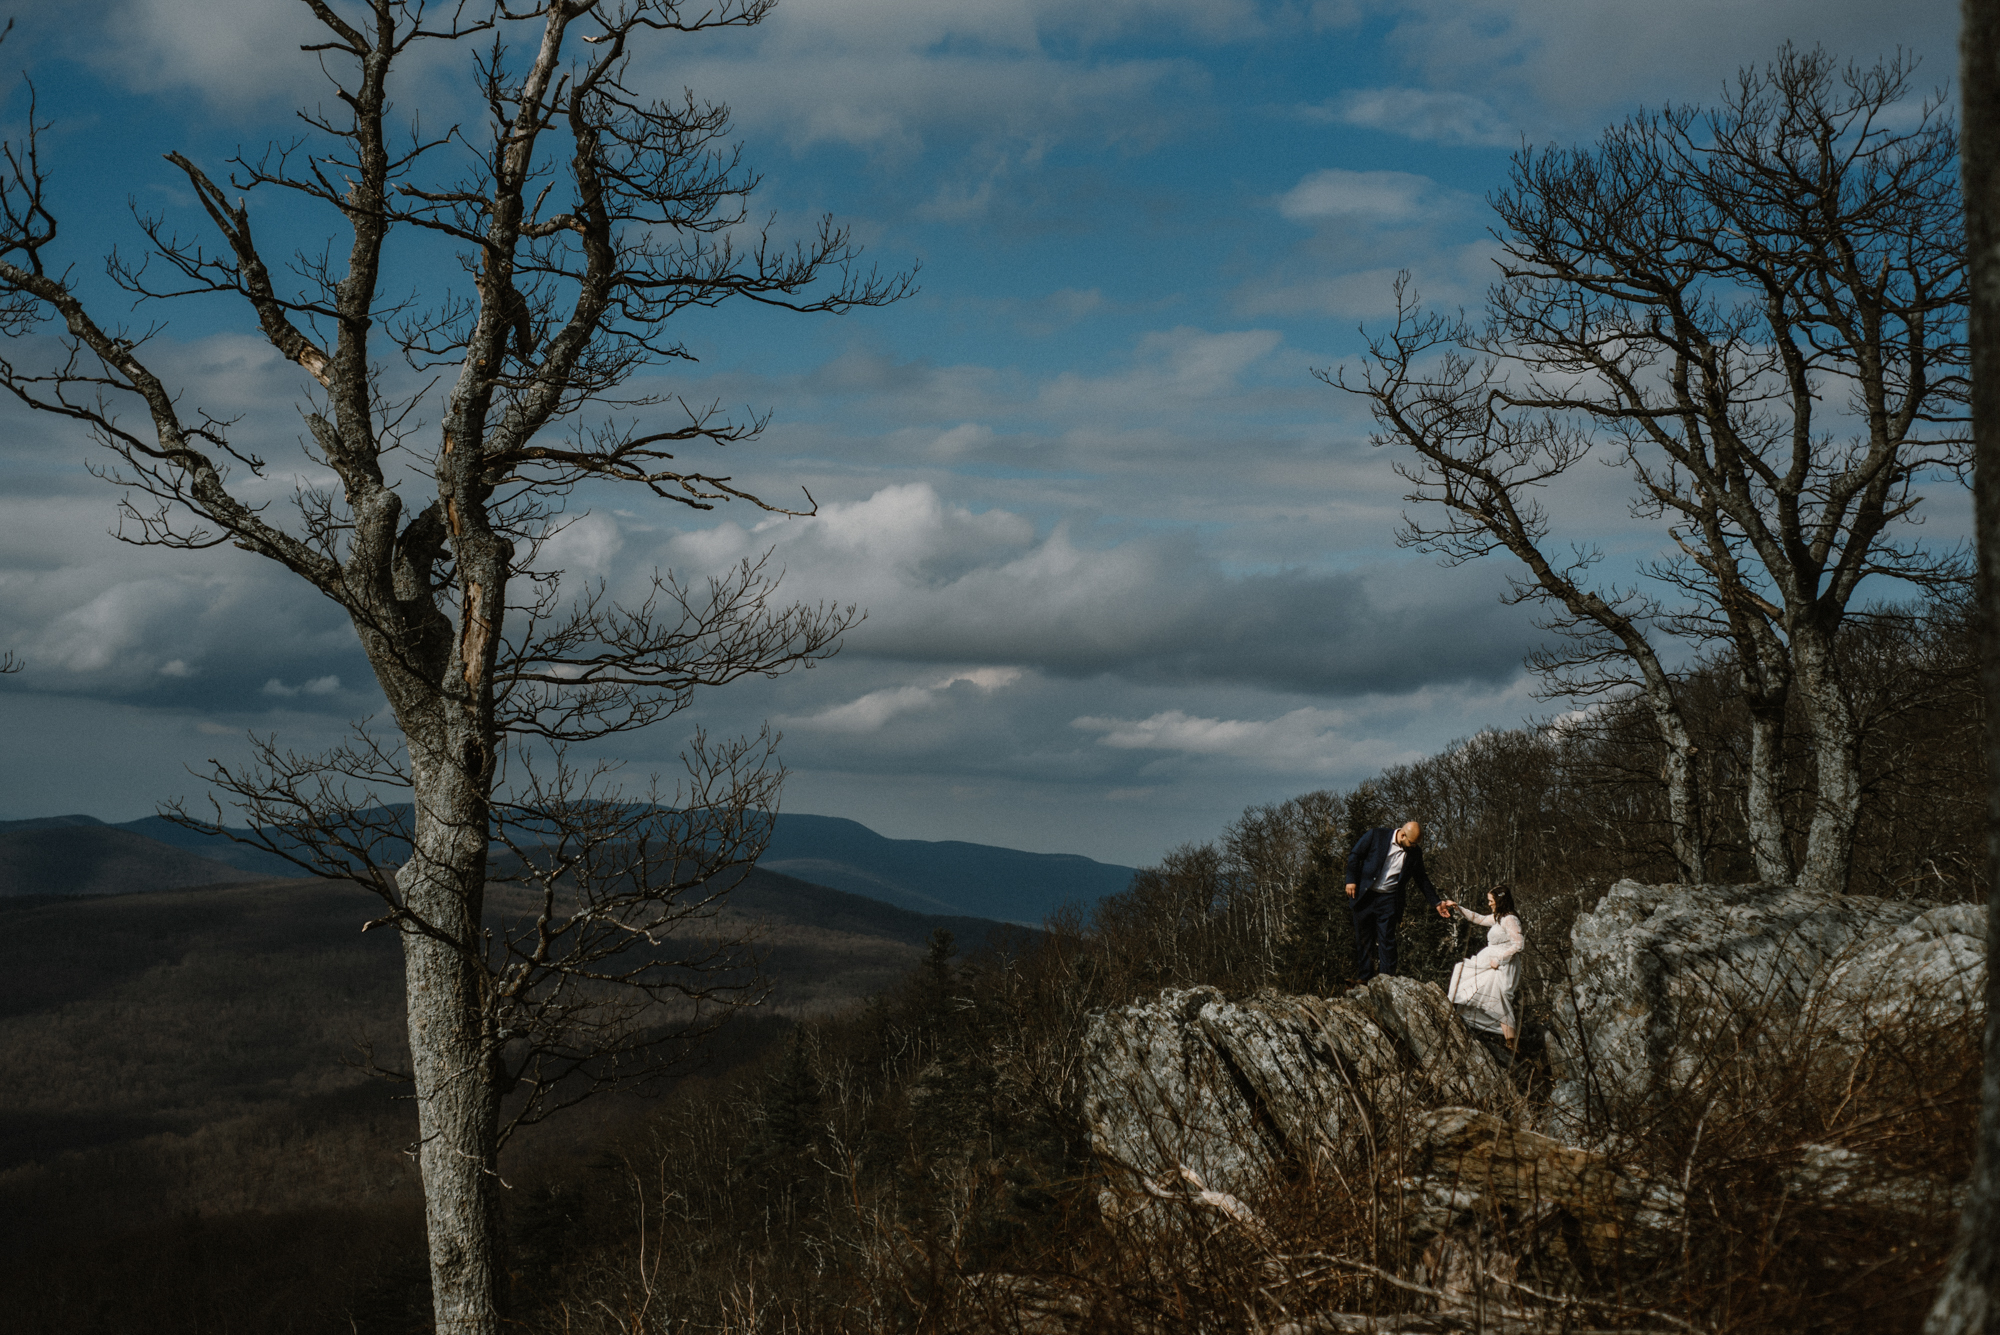 Emma and Jeddah - Intimate Luray Wedding - Shenandoah National Park Wedding - Adventure Elopement in Virginia - Shenandoah National Park Elopement_49.jpg